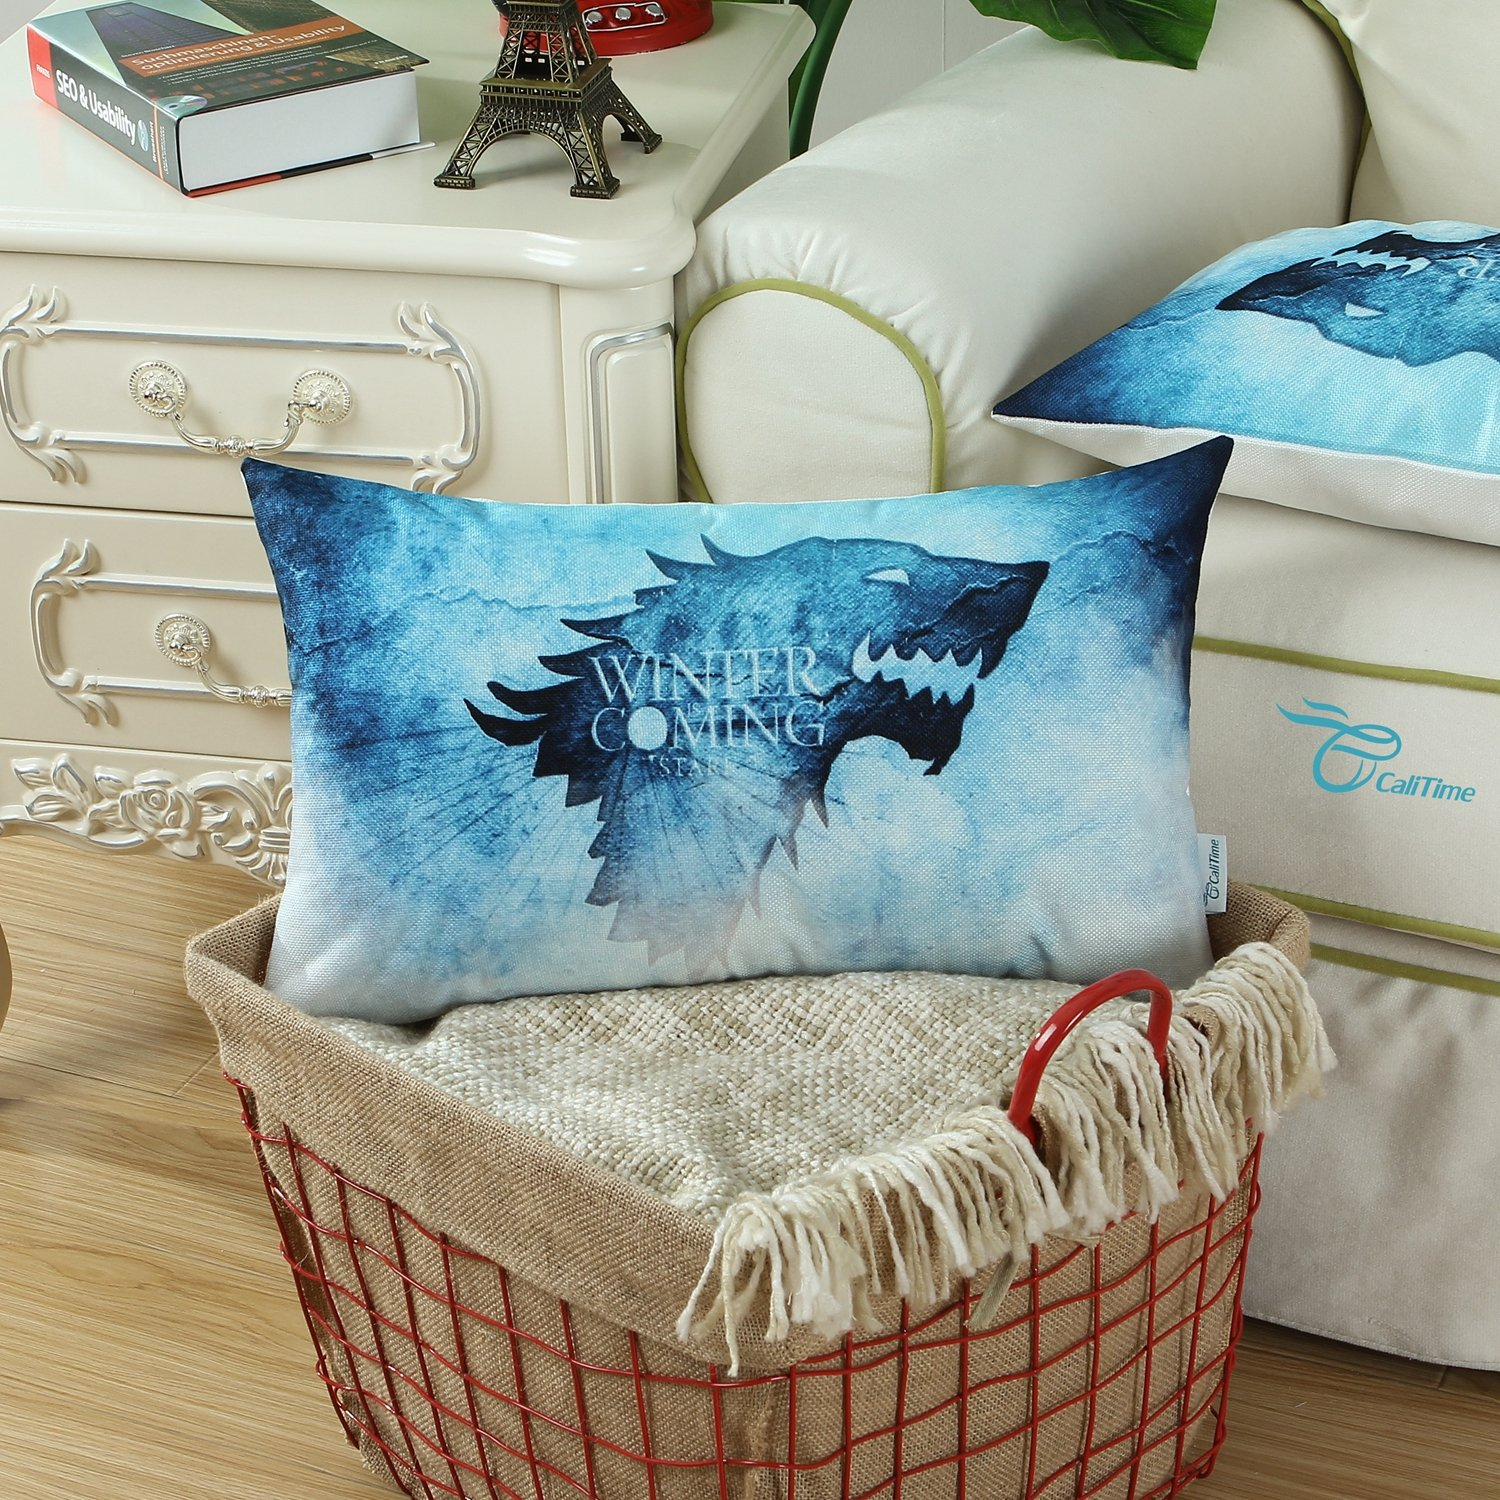 CaliTime Cushion Covers Bolster Pillow Case Shells for Bed Sofa Couch 30cm X 50cm, A Game of Thrones, Houses Stark Winter Is Coming Qingdao Ray Trading Co. Ltd. DSCF015E